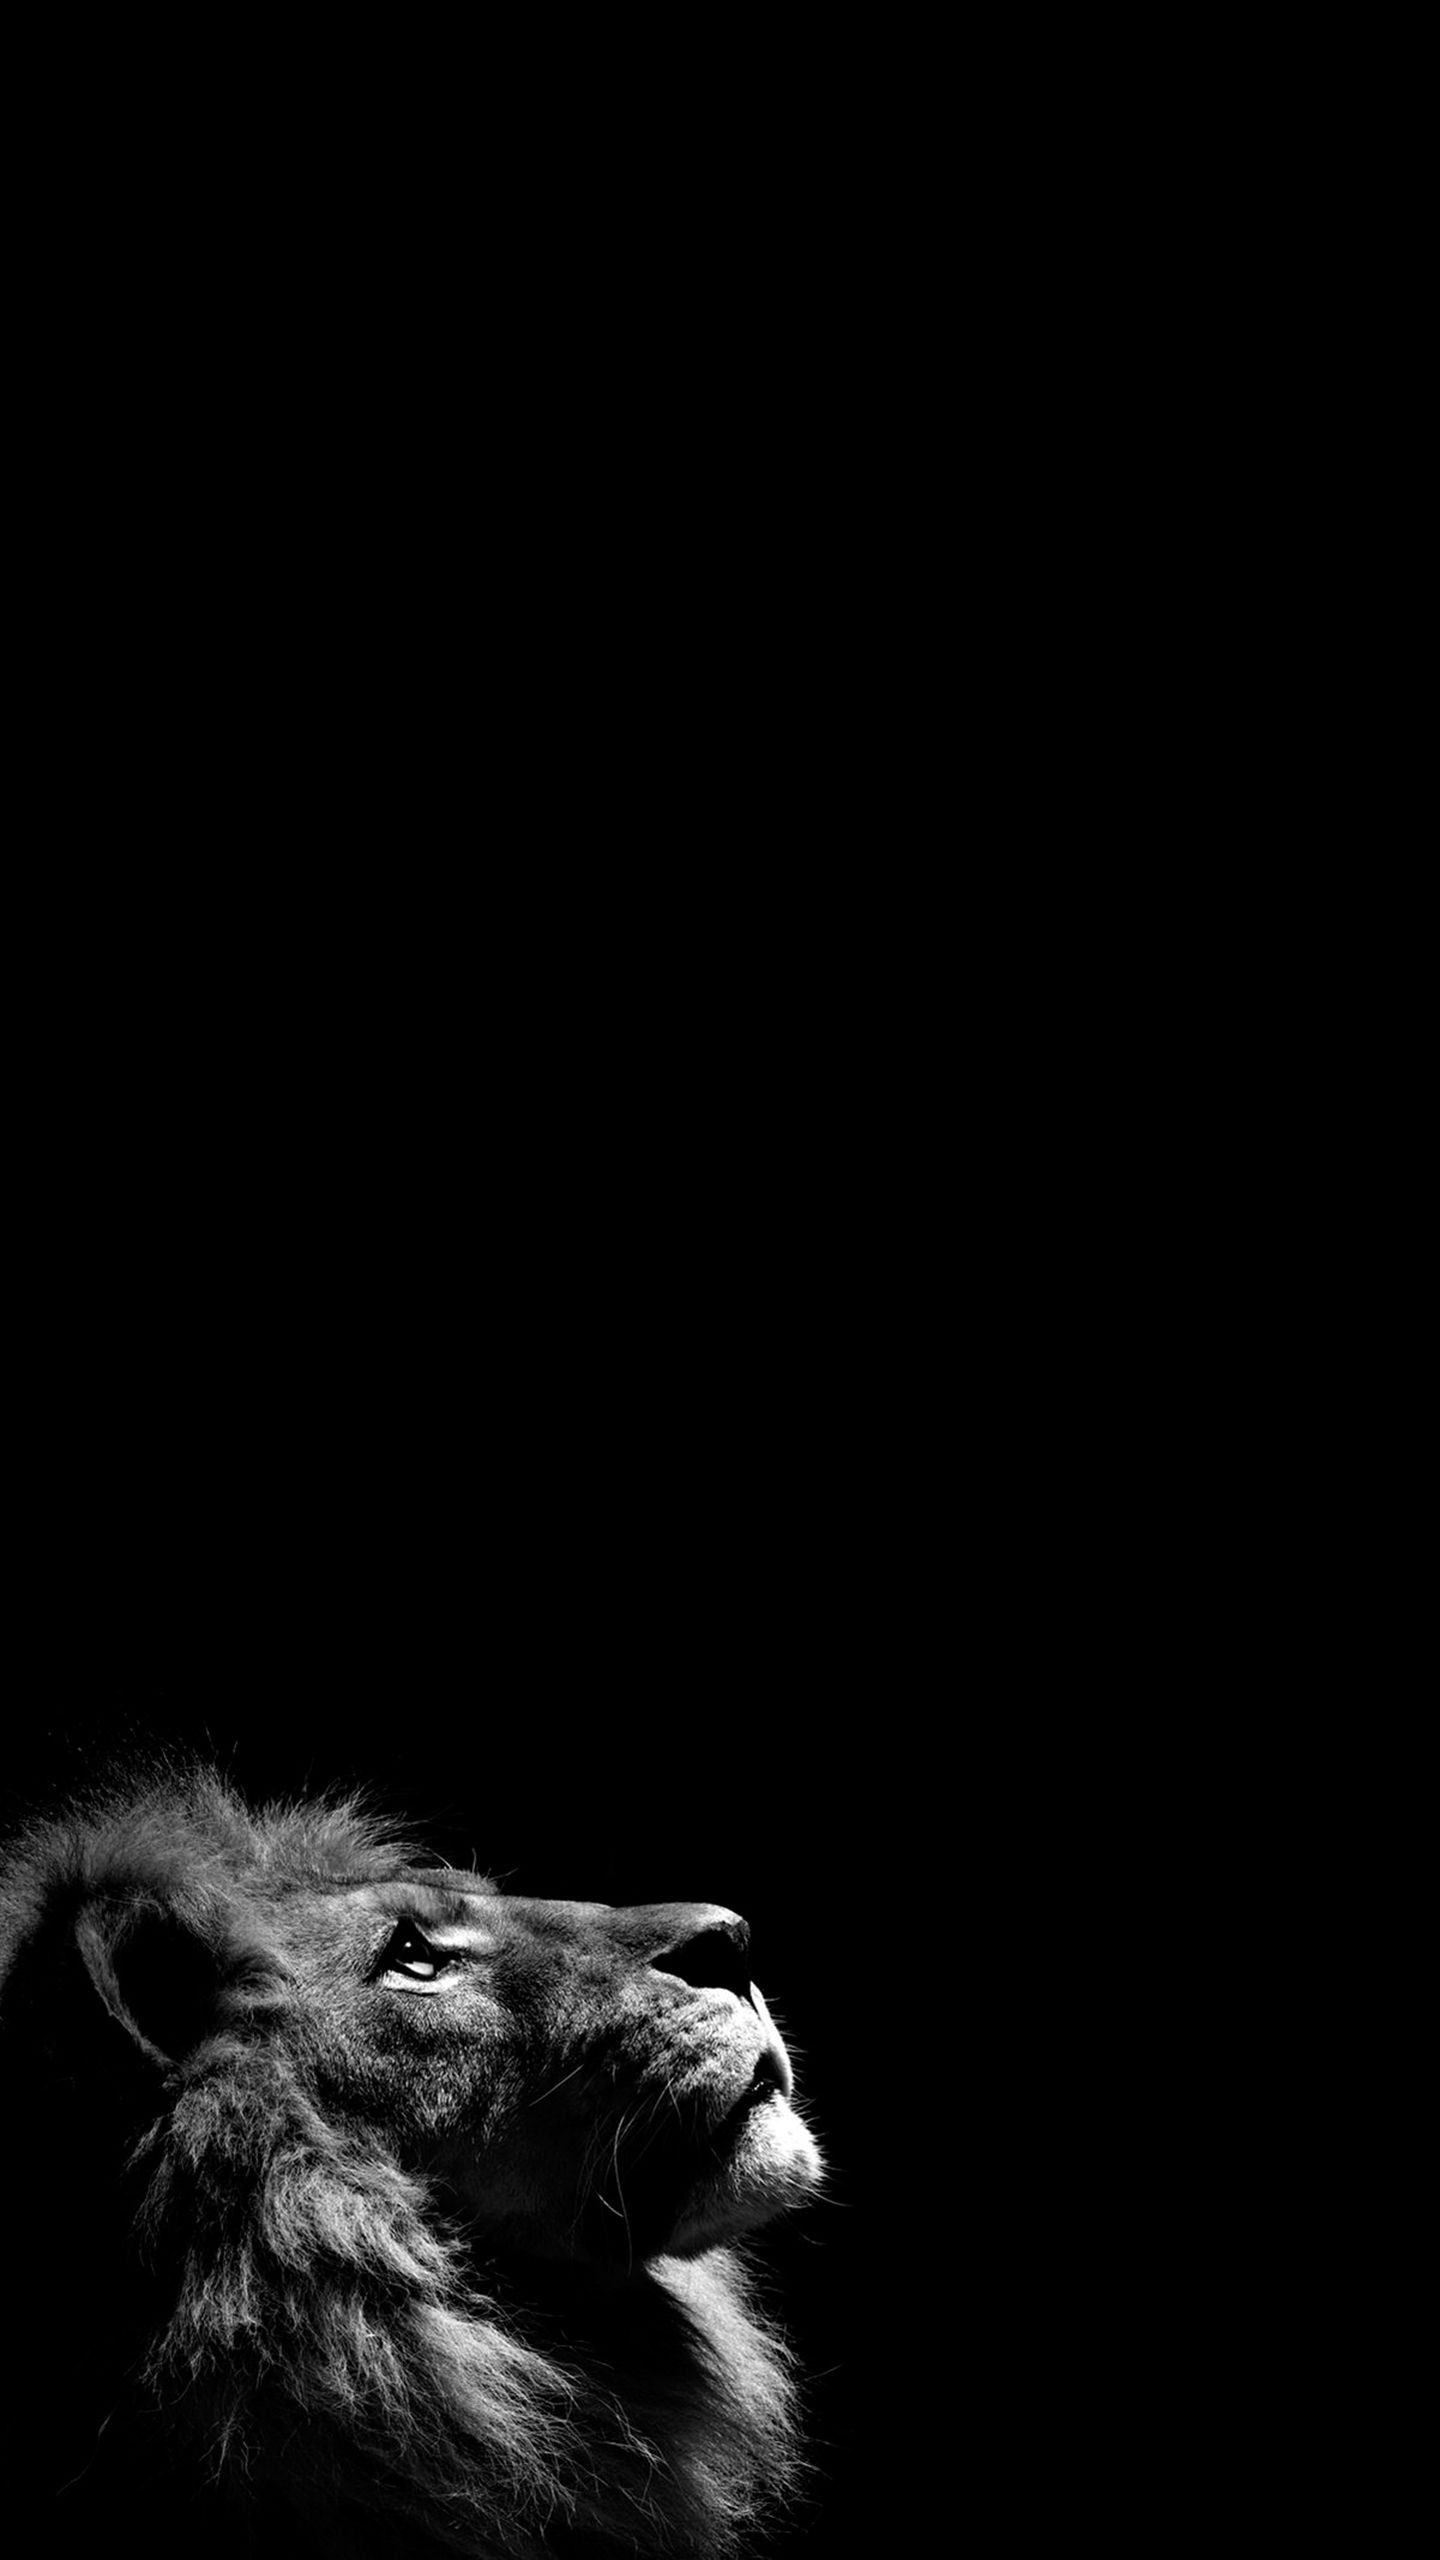 Lion Oled Wallpapers Top Free Lion Oled Backgrounds Wallpaperaccess